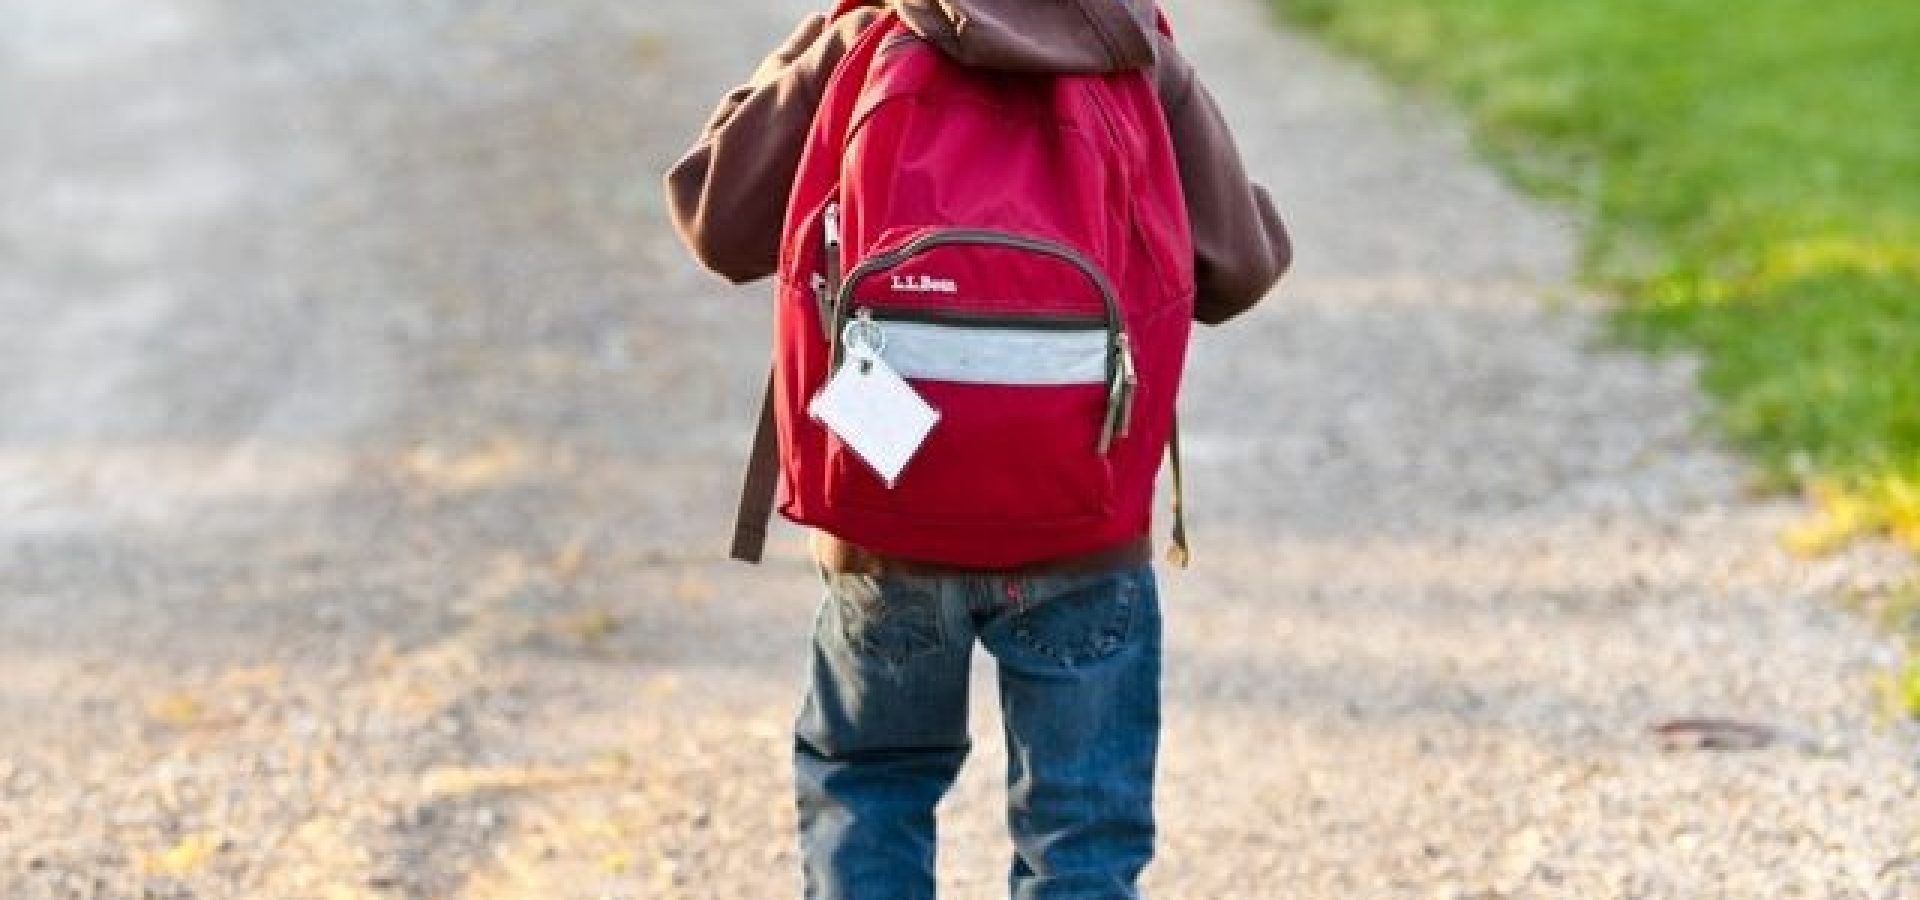 Boy walking to school wearing backpack